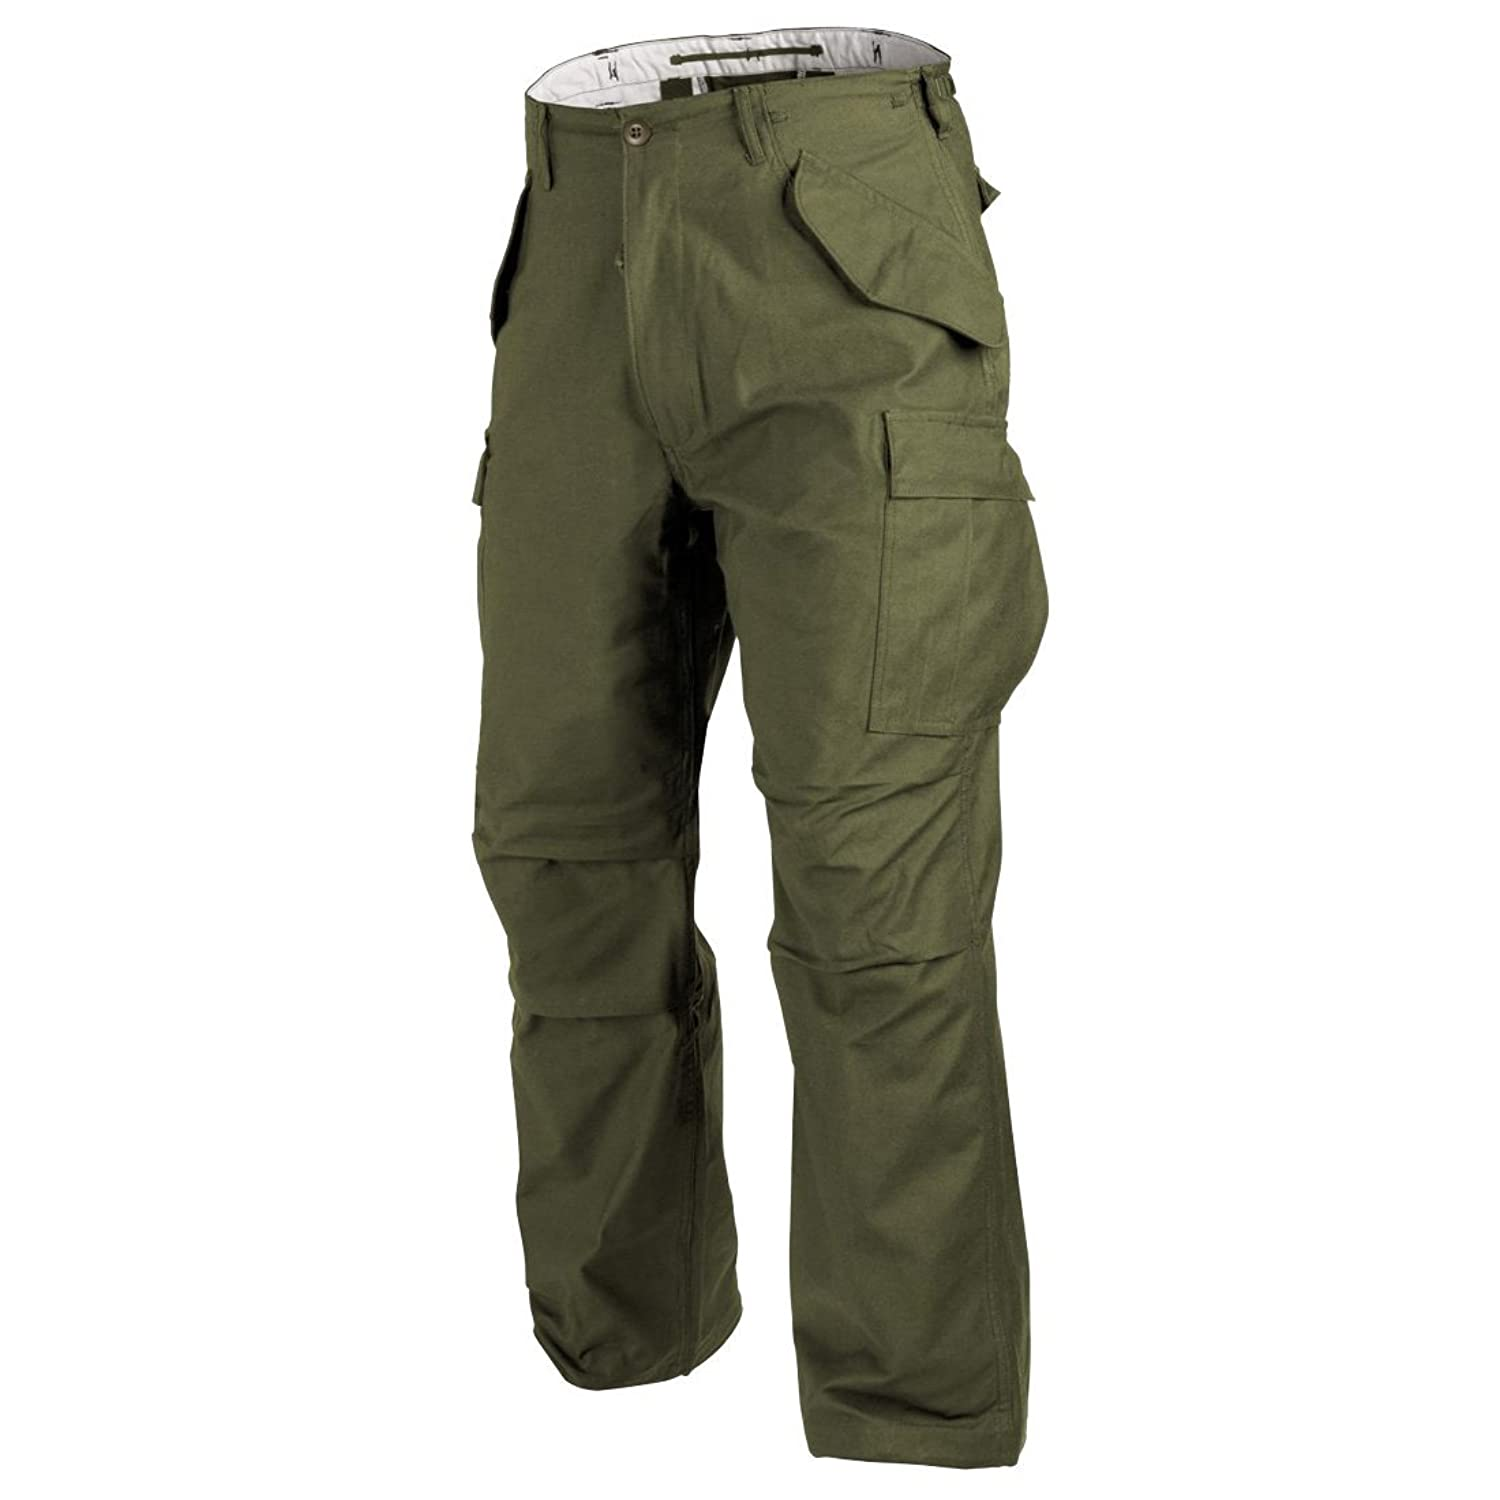 HELIKON GENUINE US M65 COMBAT CARGO TROUSERS MENS ARMY PANTS SECURITY MILITARY (Olive, Regular Leg, Large)